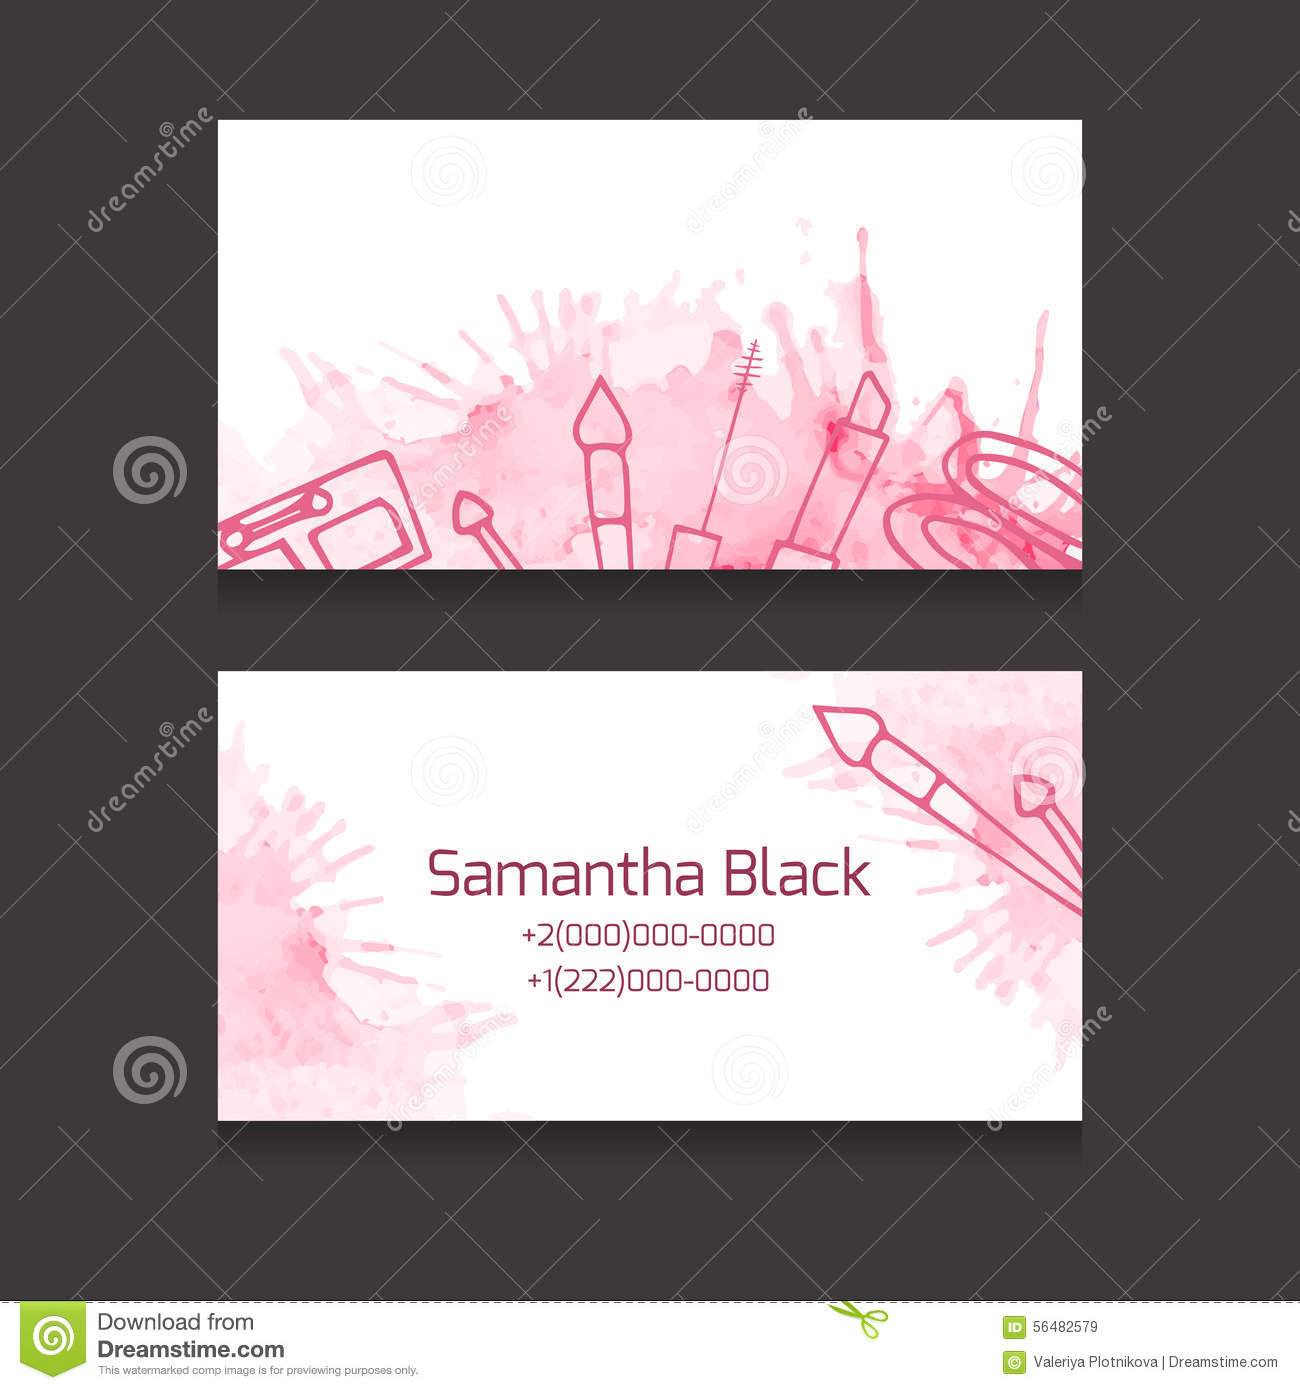 Makeup artist business card stock vector illustration of makeup artist business card alramifo Image collections